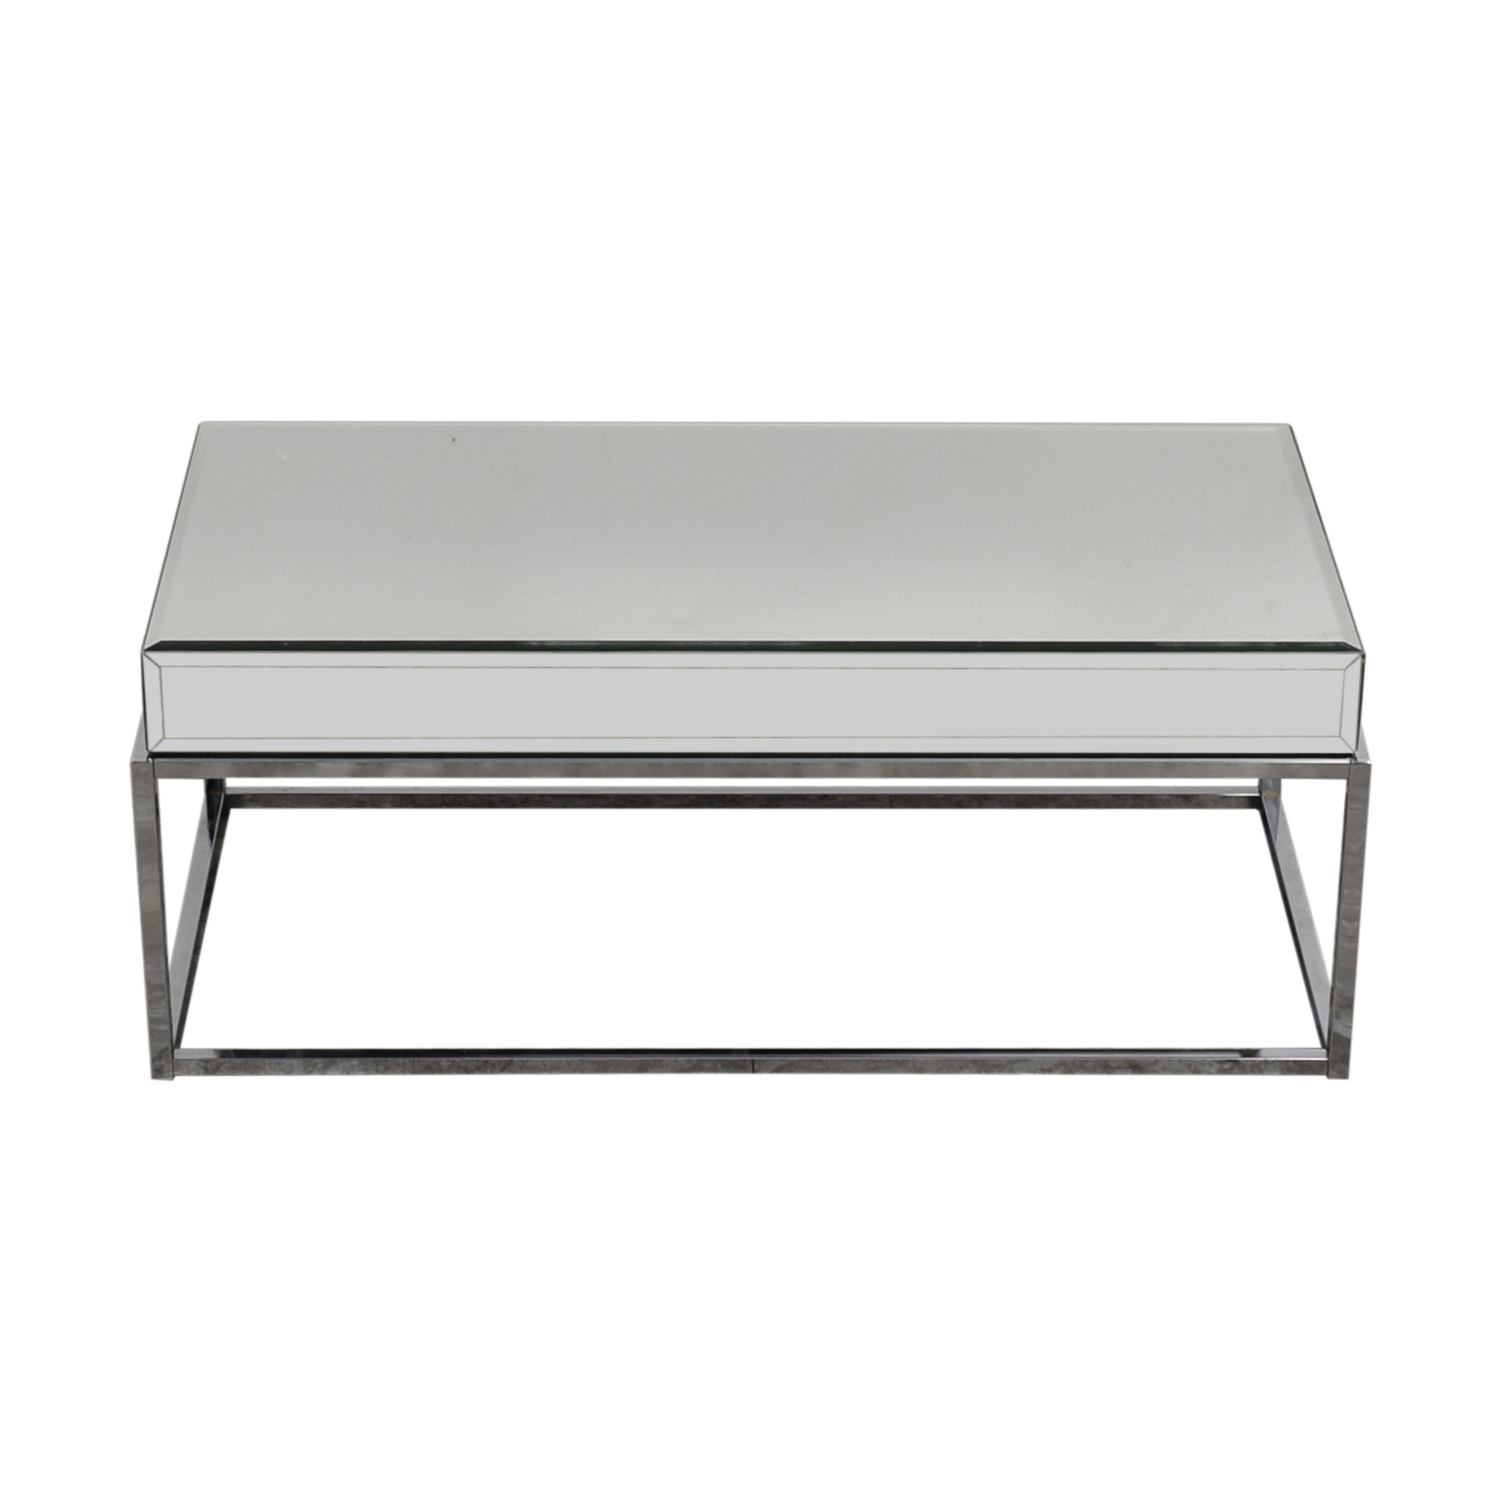 Joss and Main Kyla Coffee Table / Coffee Tables